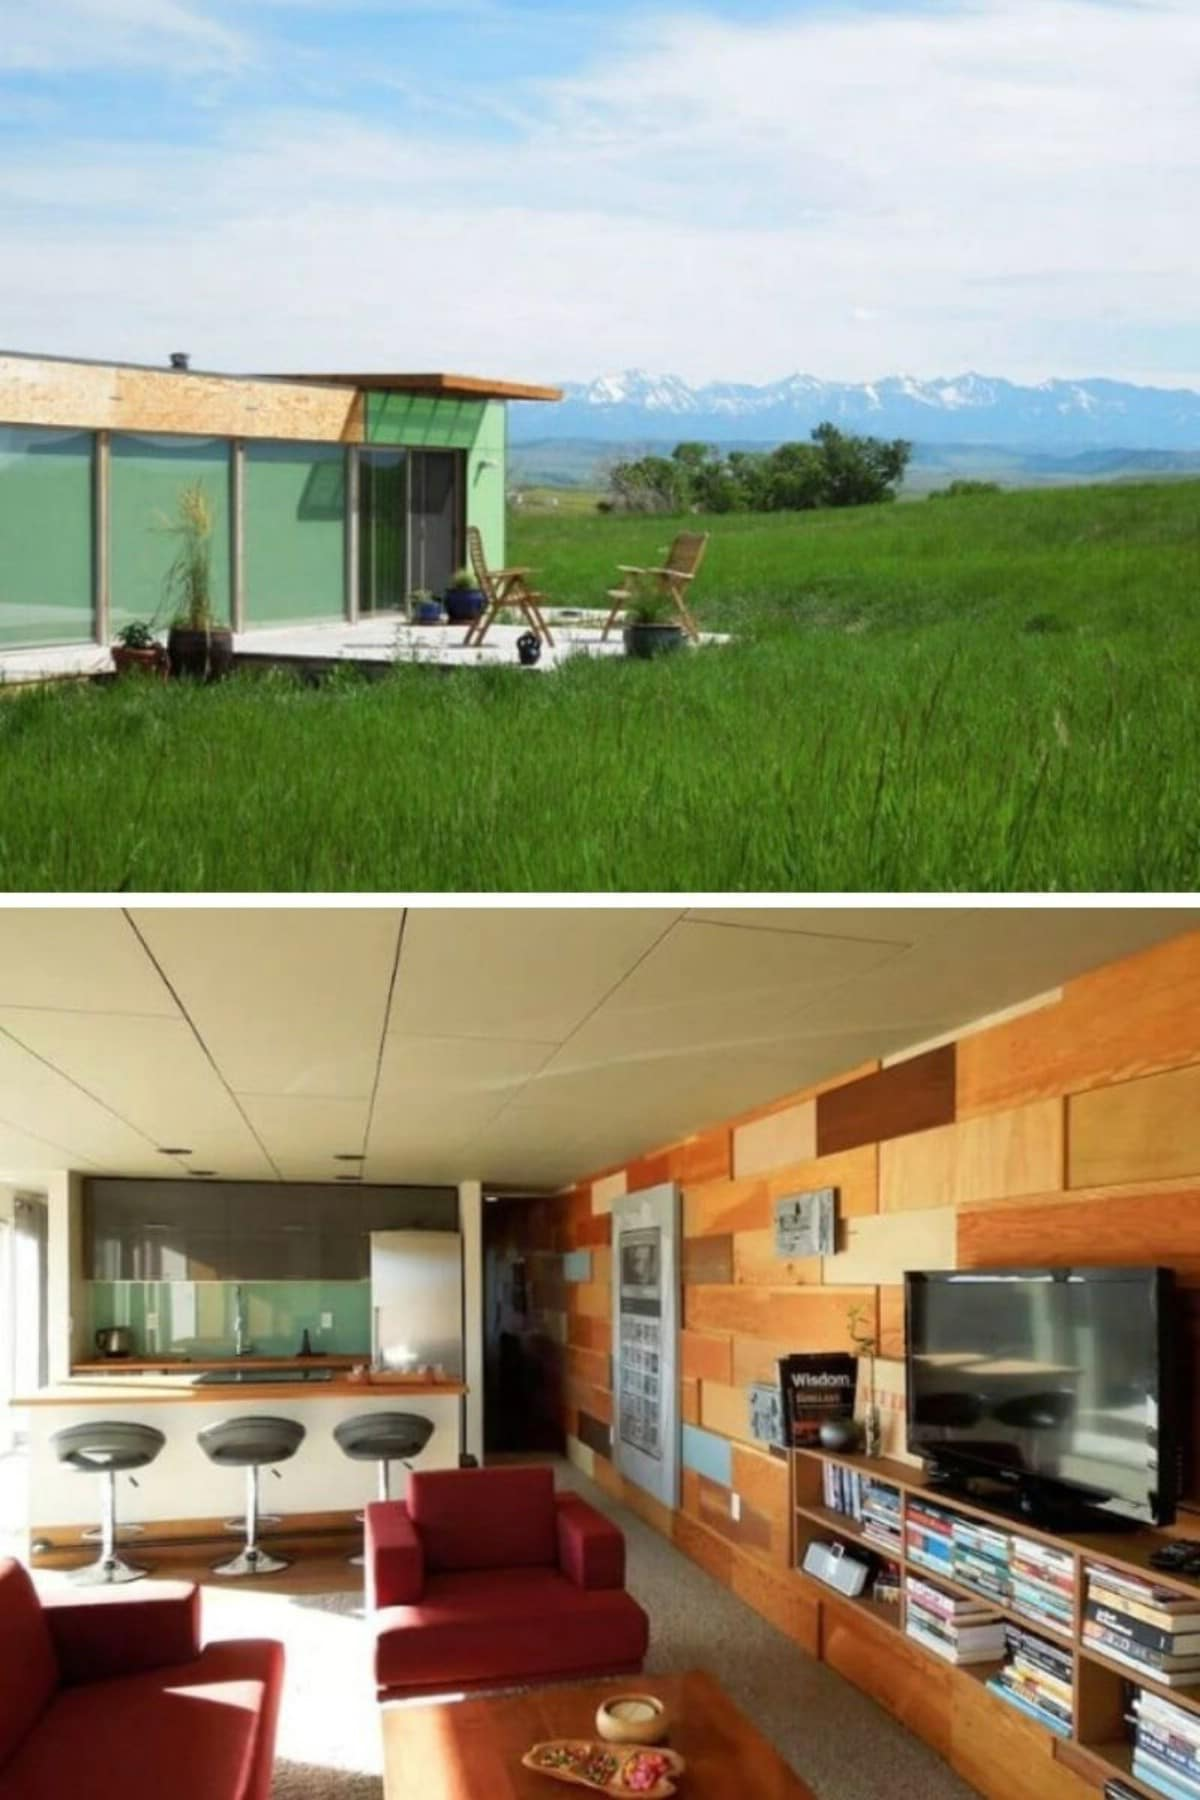 Montana 700-Square-Foot Container Home